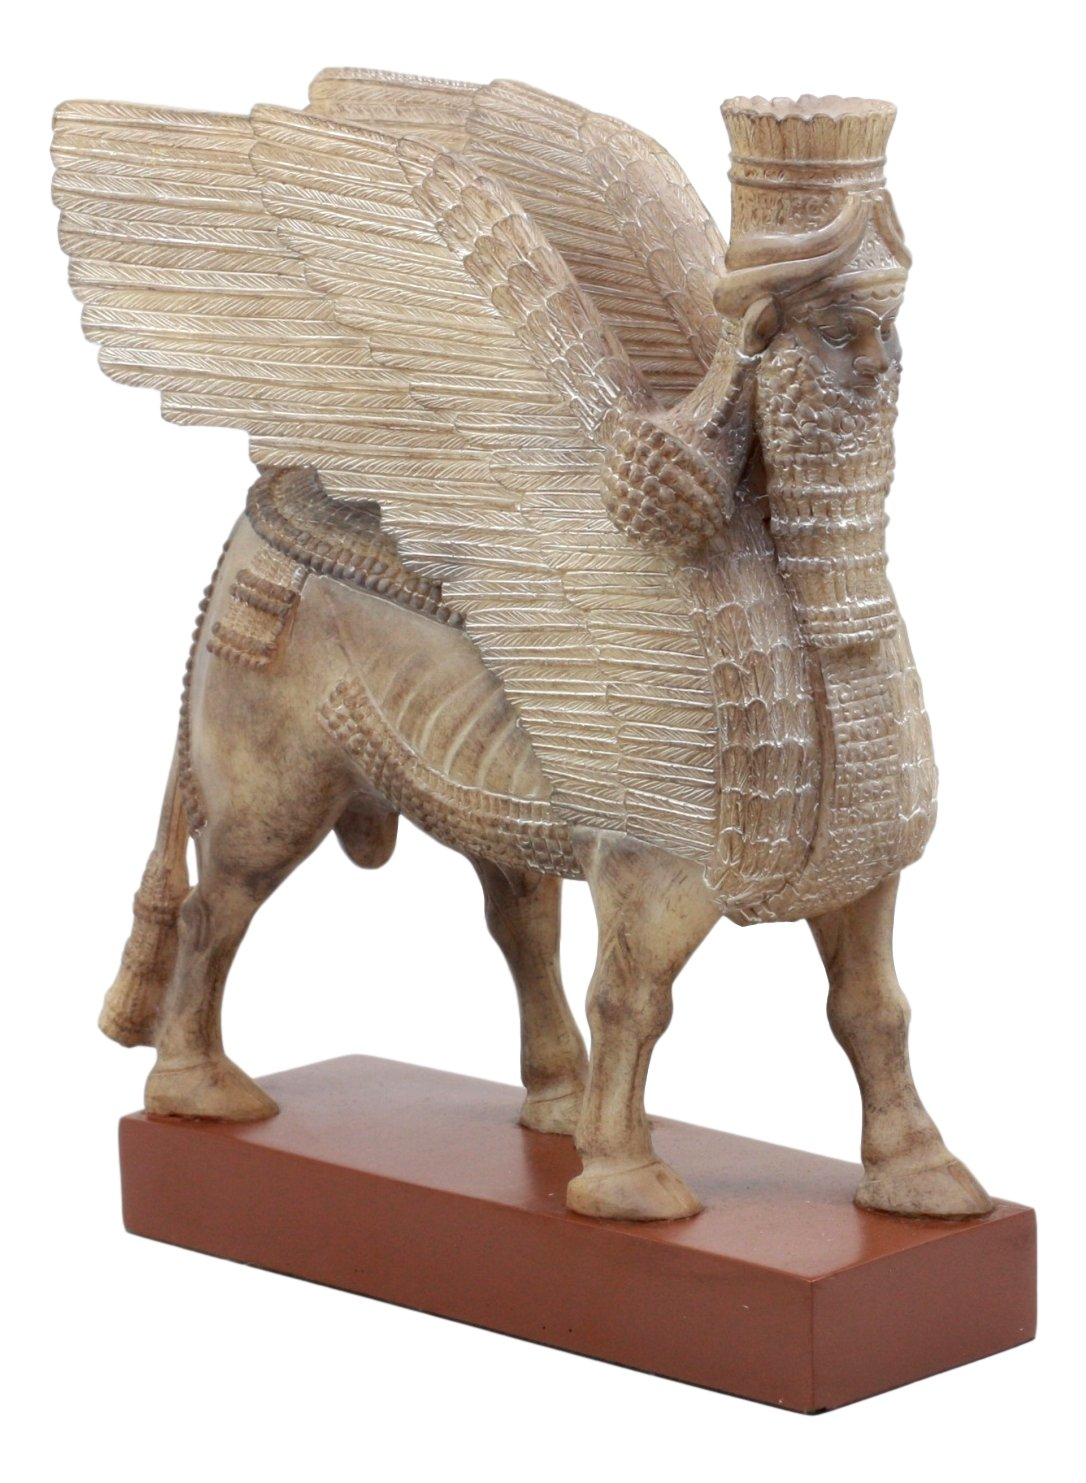 Ebros Ancient Assyrian Lamassu Bull Statue 8.5'' L Decorative Collectible Shedu On Wooden Pedestal by Ebros Gift